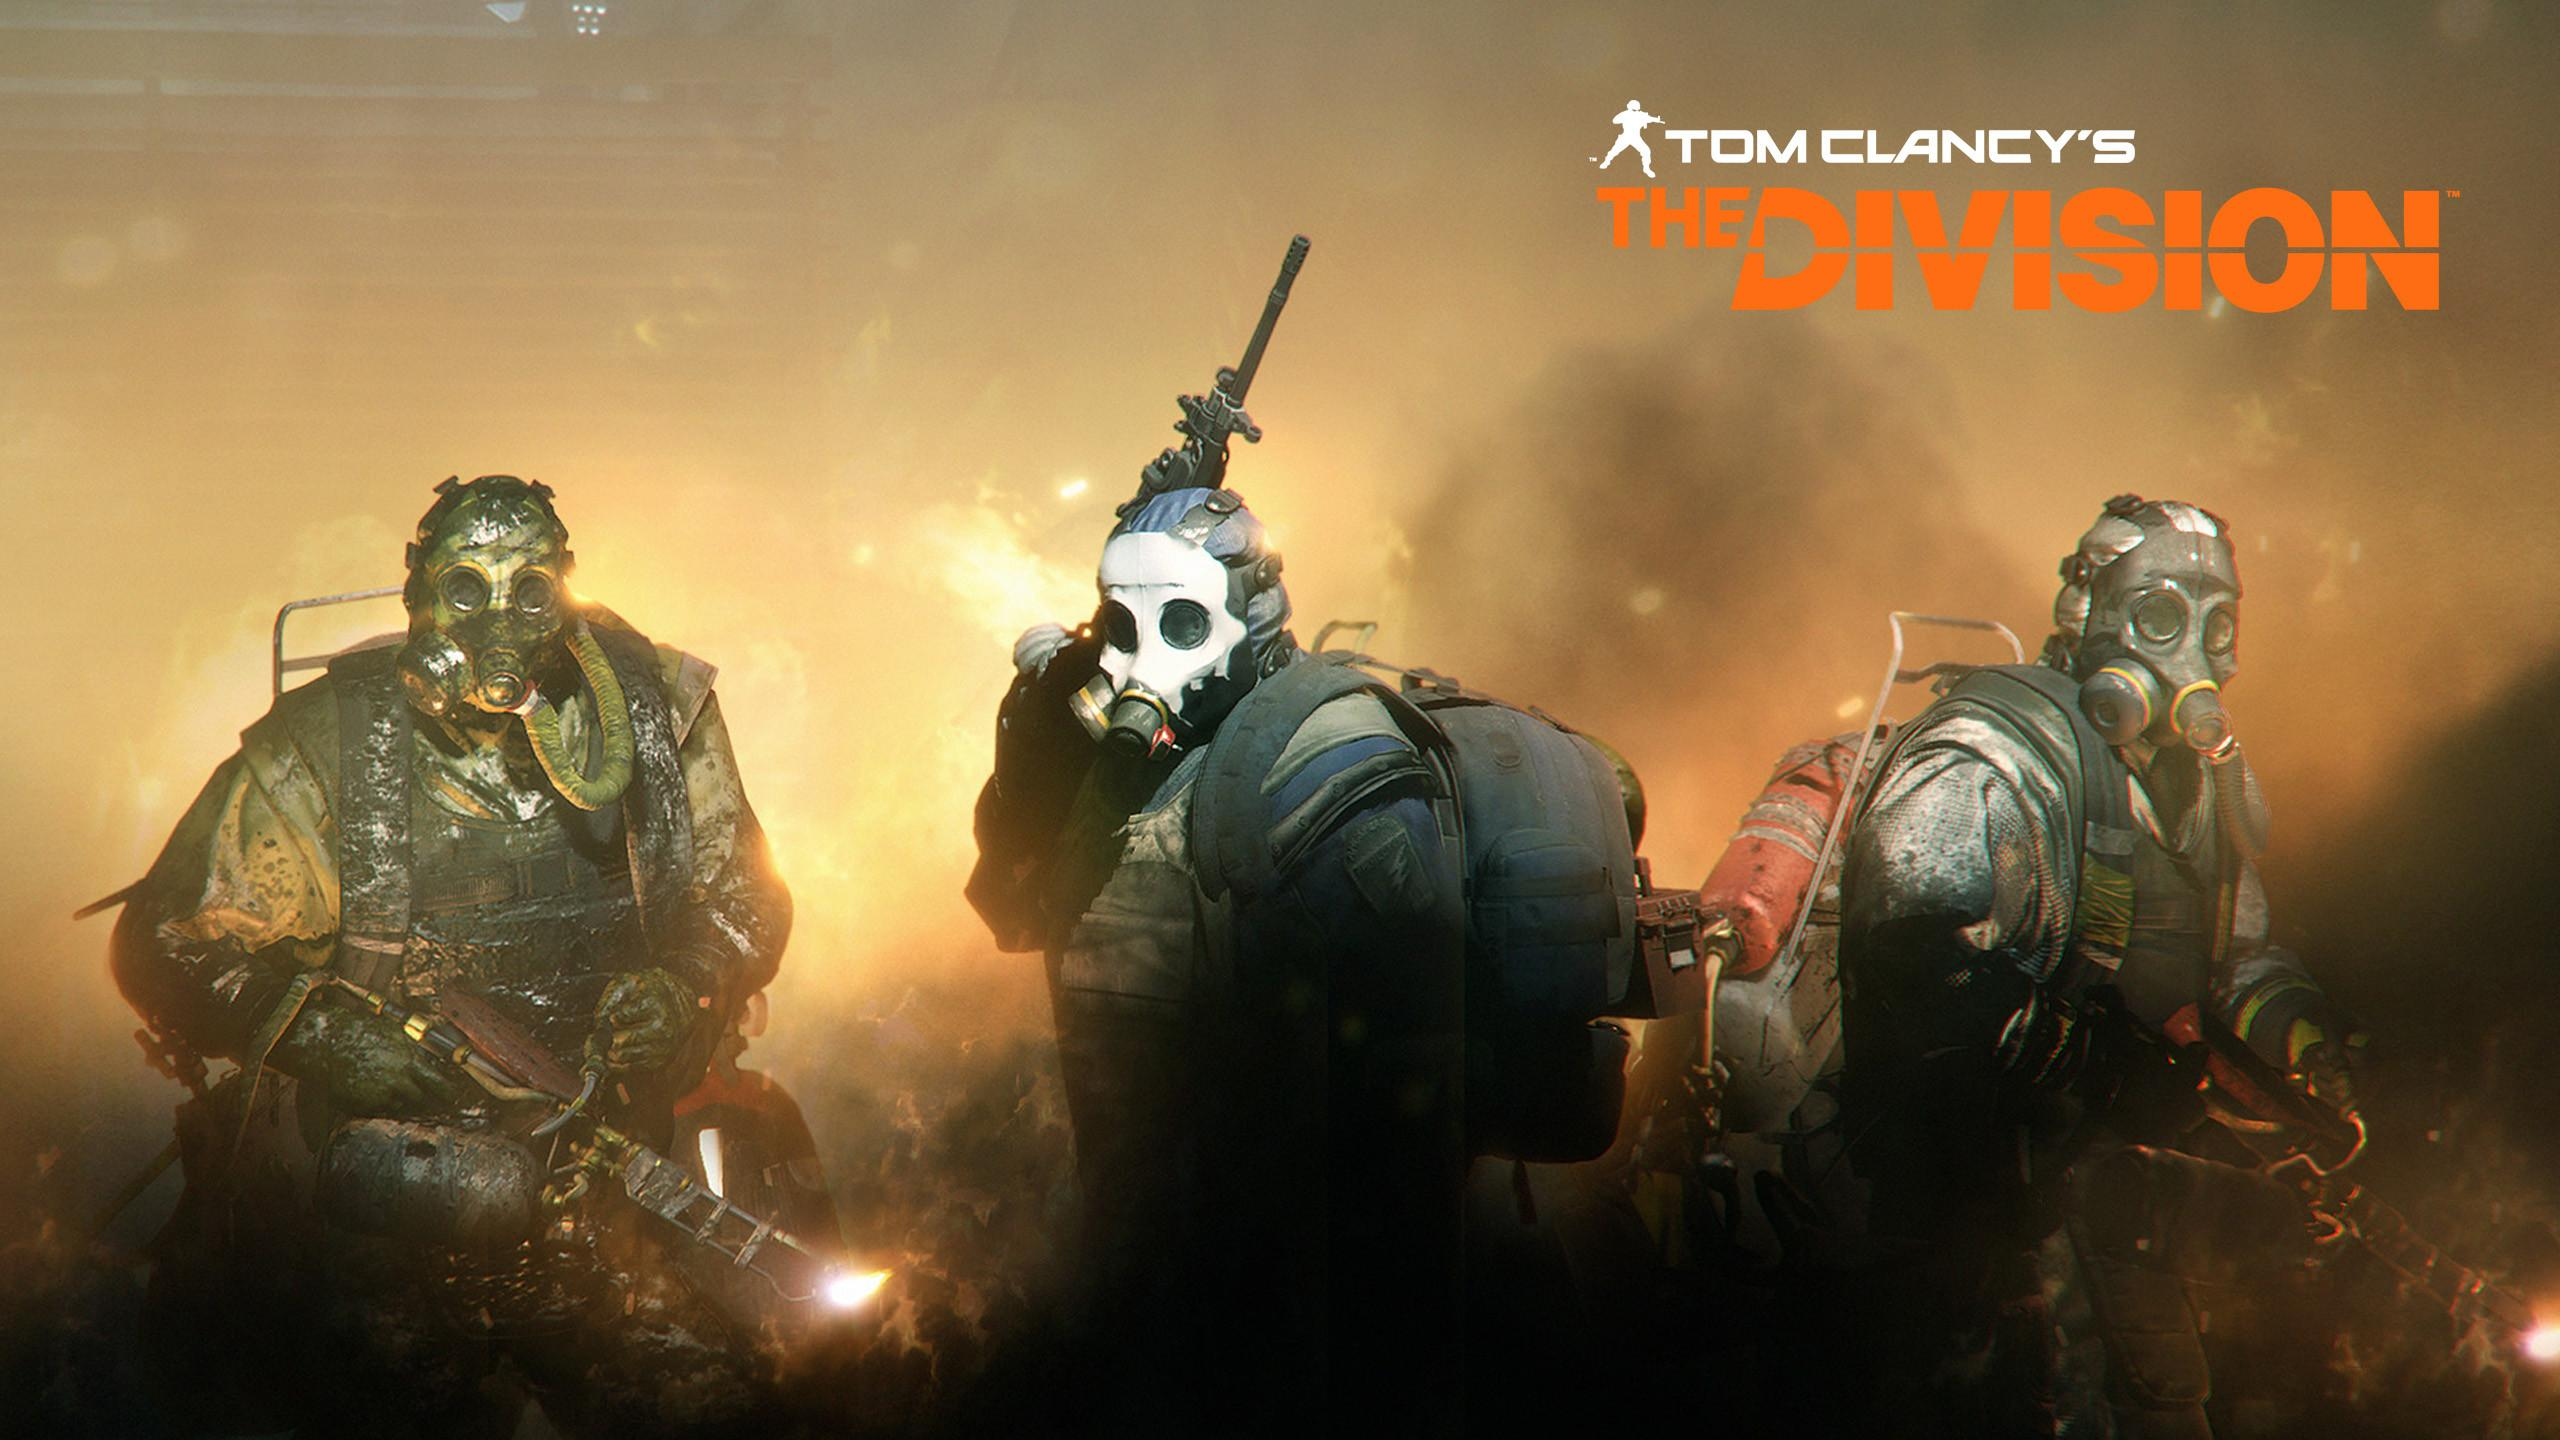 Tom Clancy's The Division 2 4K Wallpapers - Wallpaper Cave